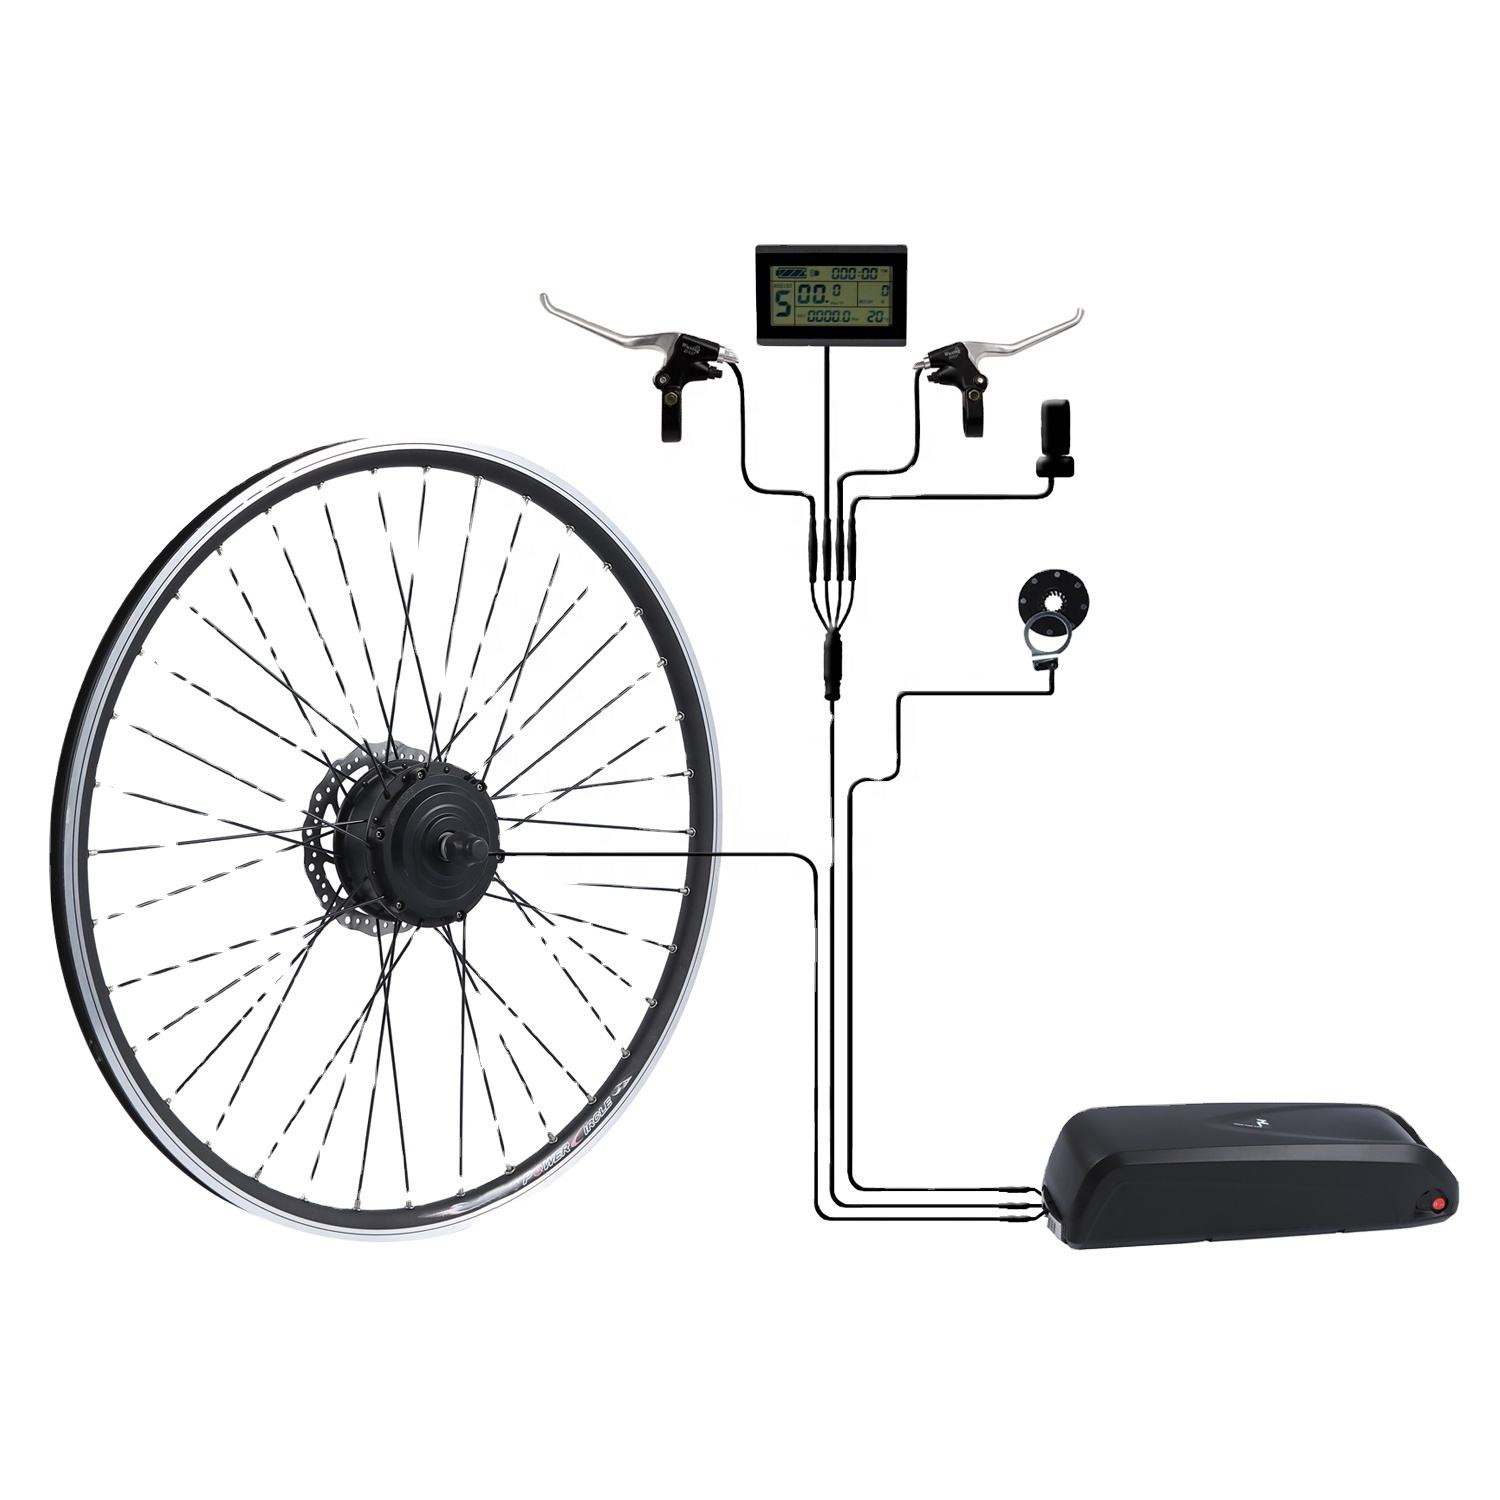 Kit電動自転車バッテリー付属36V 250W統合コントローラ電動自転車キットとLCD